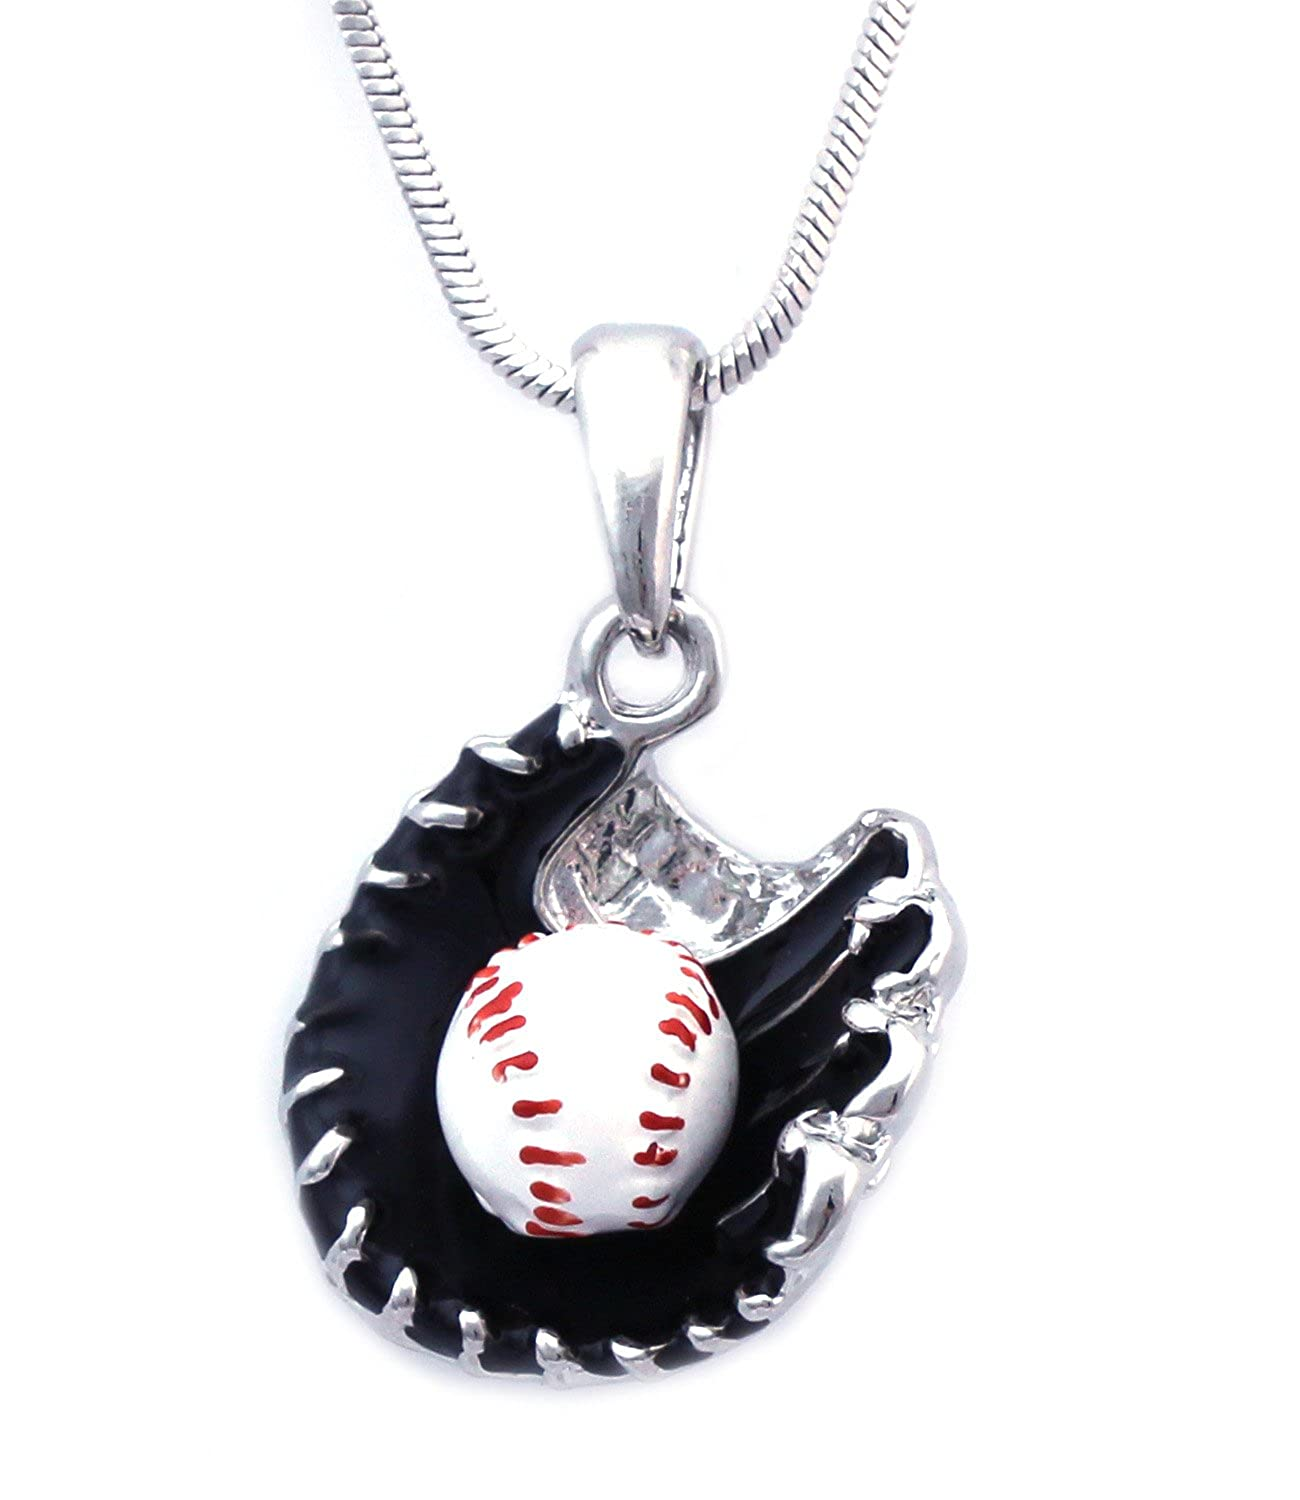 baseball products pendant necklace shineon